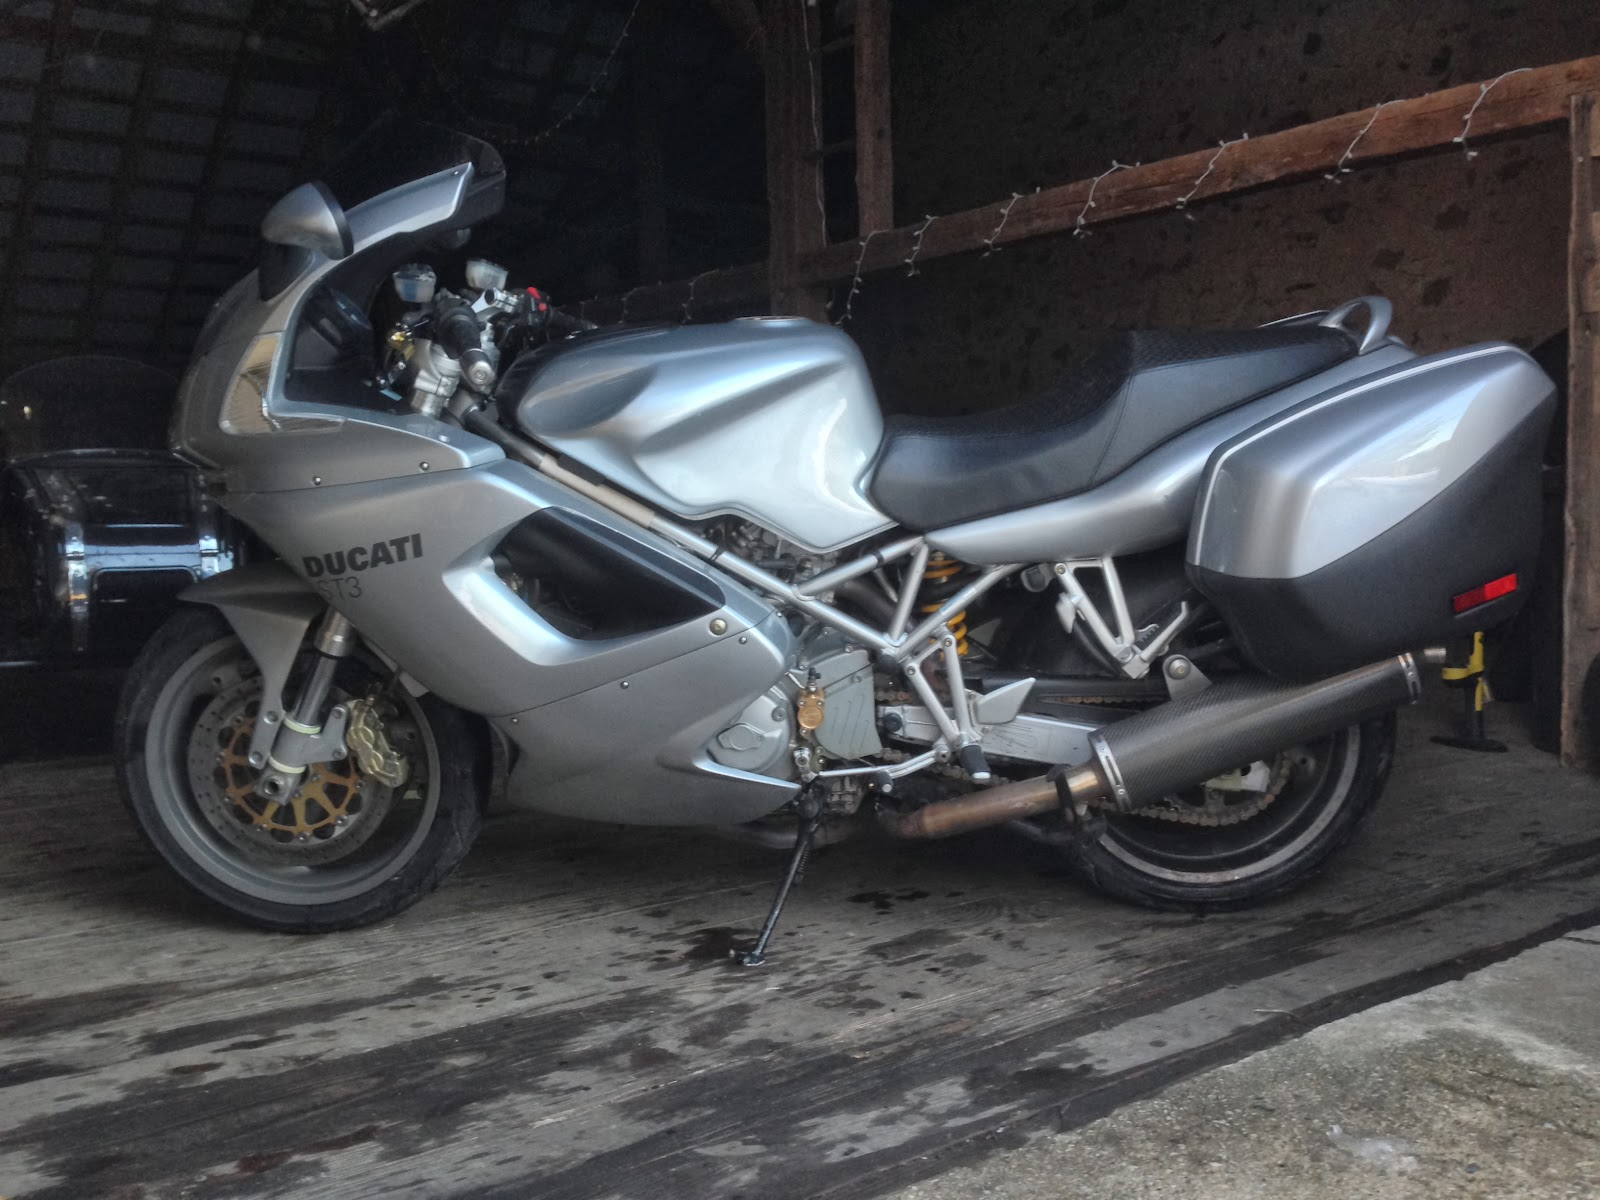 Ducati ST3: First Impressions of a new Silver Duc parked in Tigho's barn